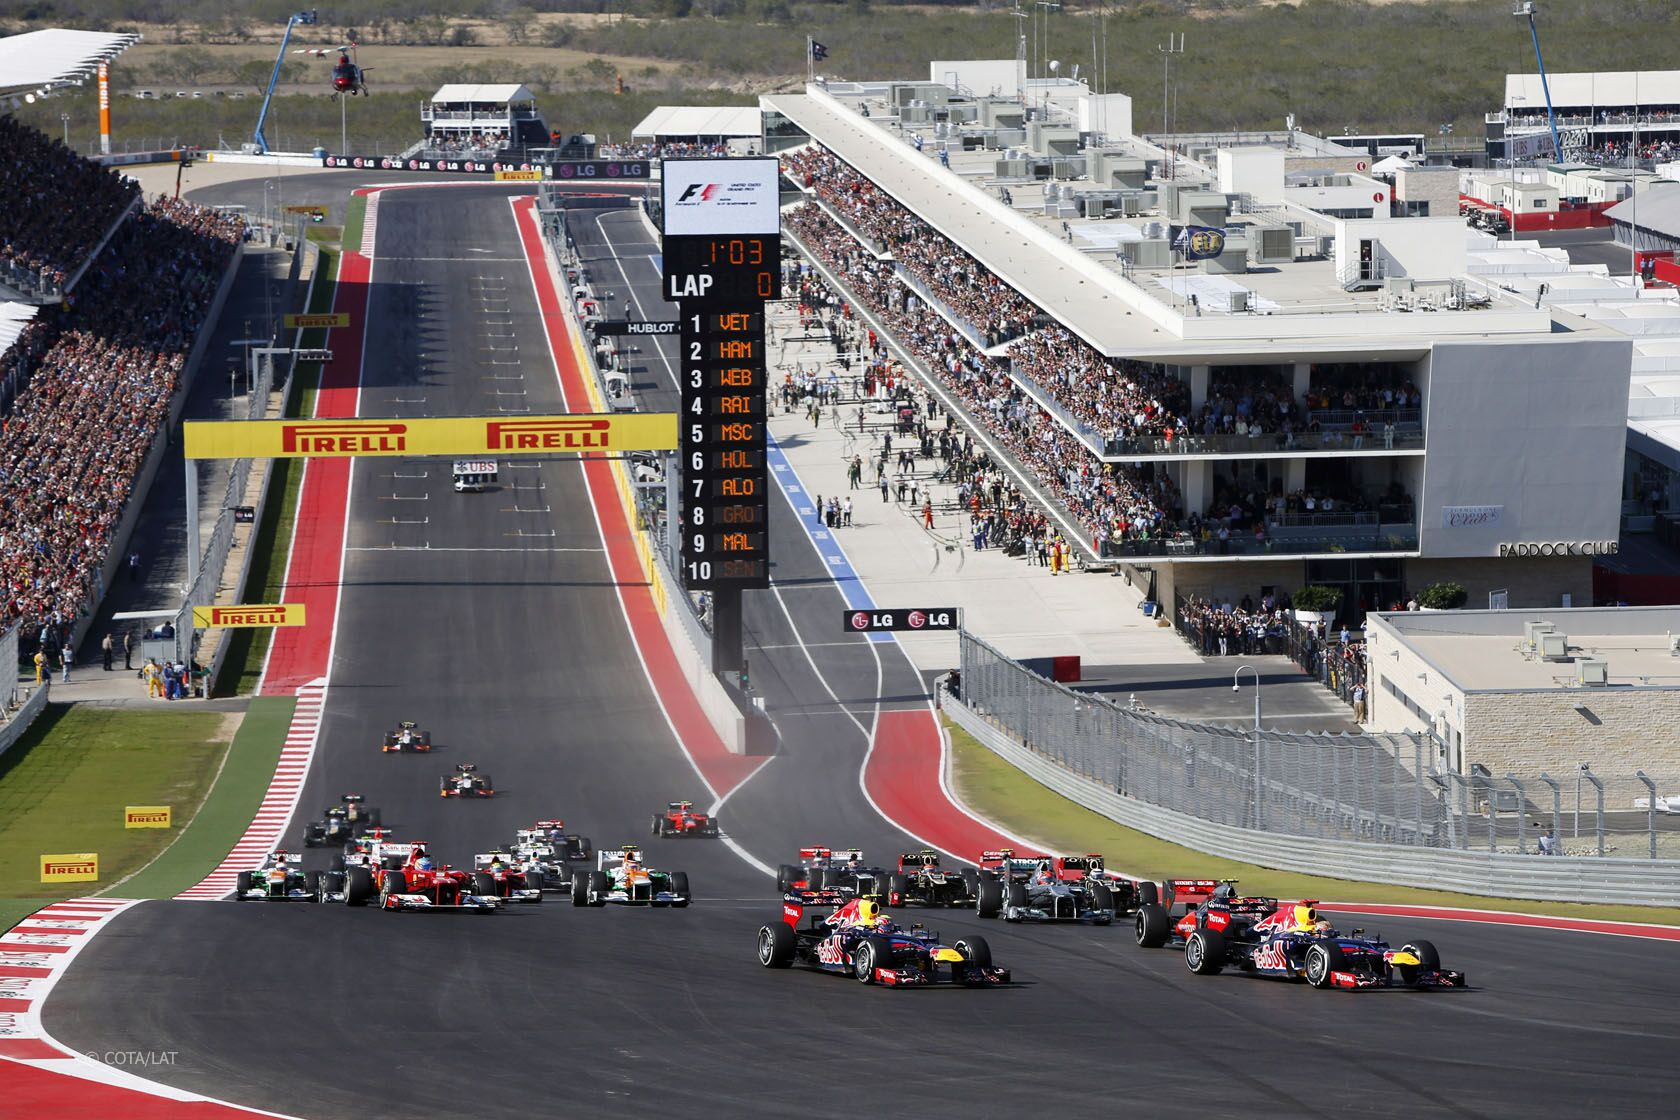 Us Grand Prix >> Formula One Us Grand Prix At Cota With Ferrari Challenge